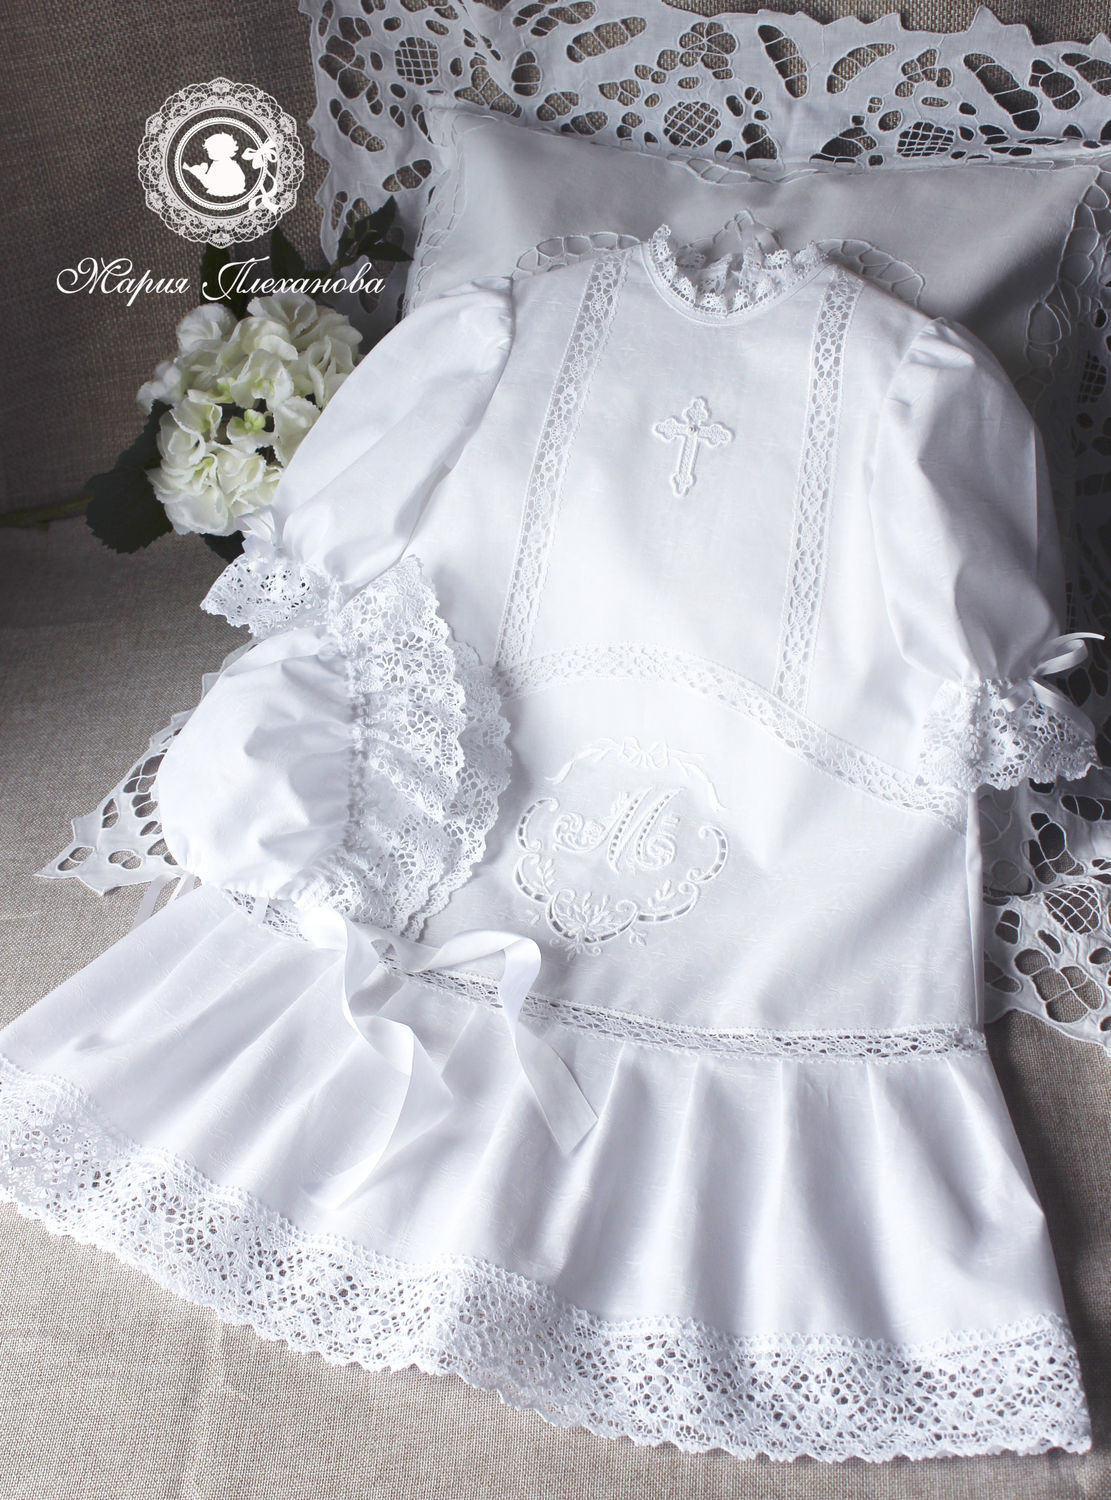 Baptismal gown and bonnet \